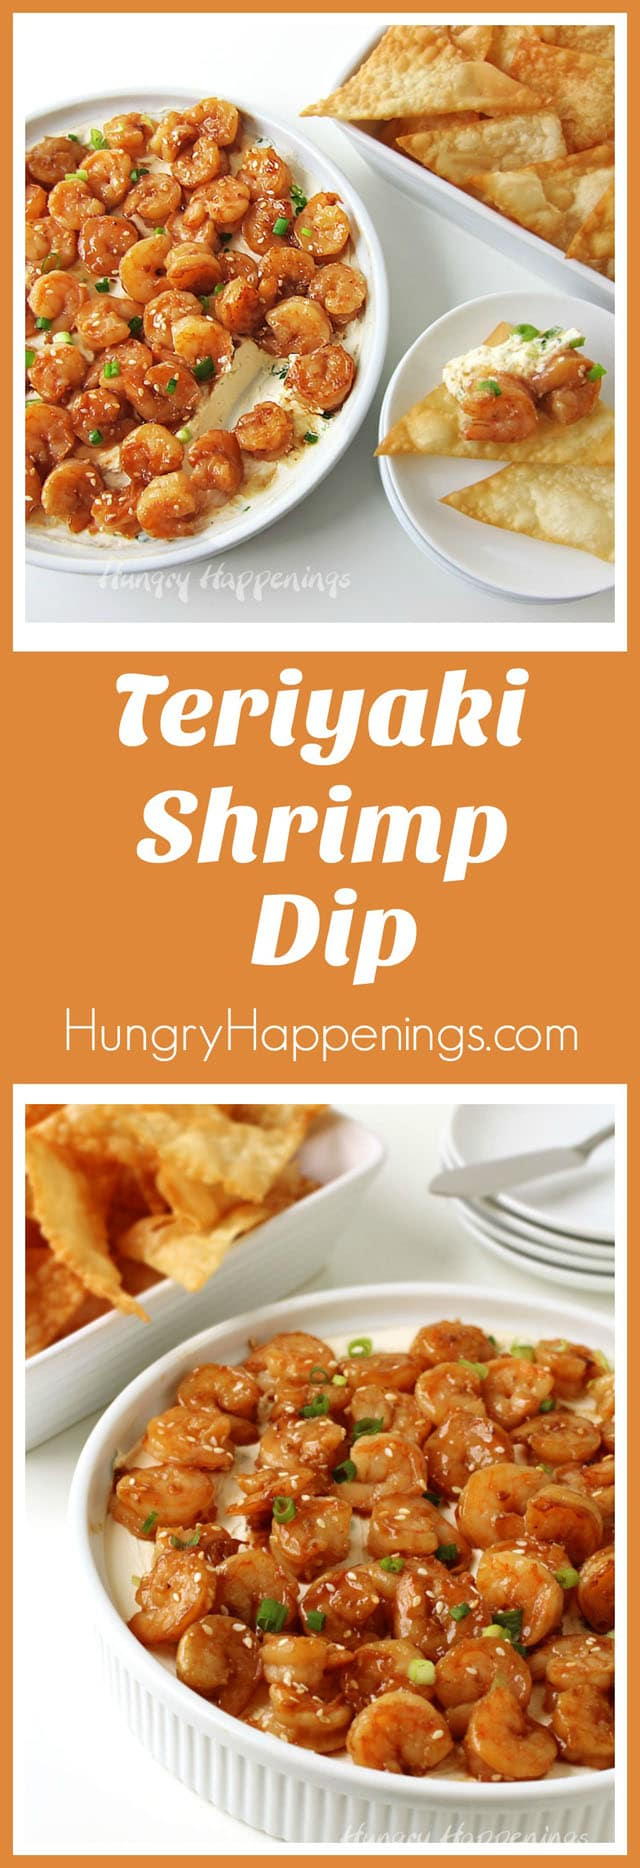 Sauté shrimp in P.F. Chang's® Home Menu Teriyaki Sauce to make this fantastic Teriyaki Shrimp Dip. It's super easy to make and your family and friends will love it!